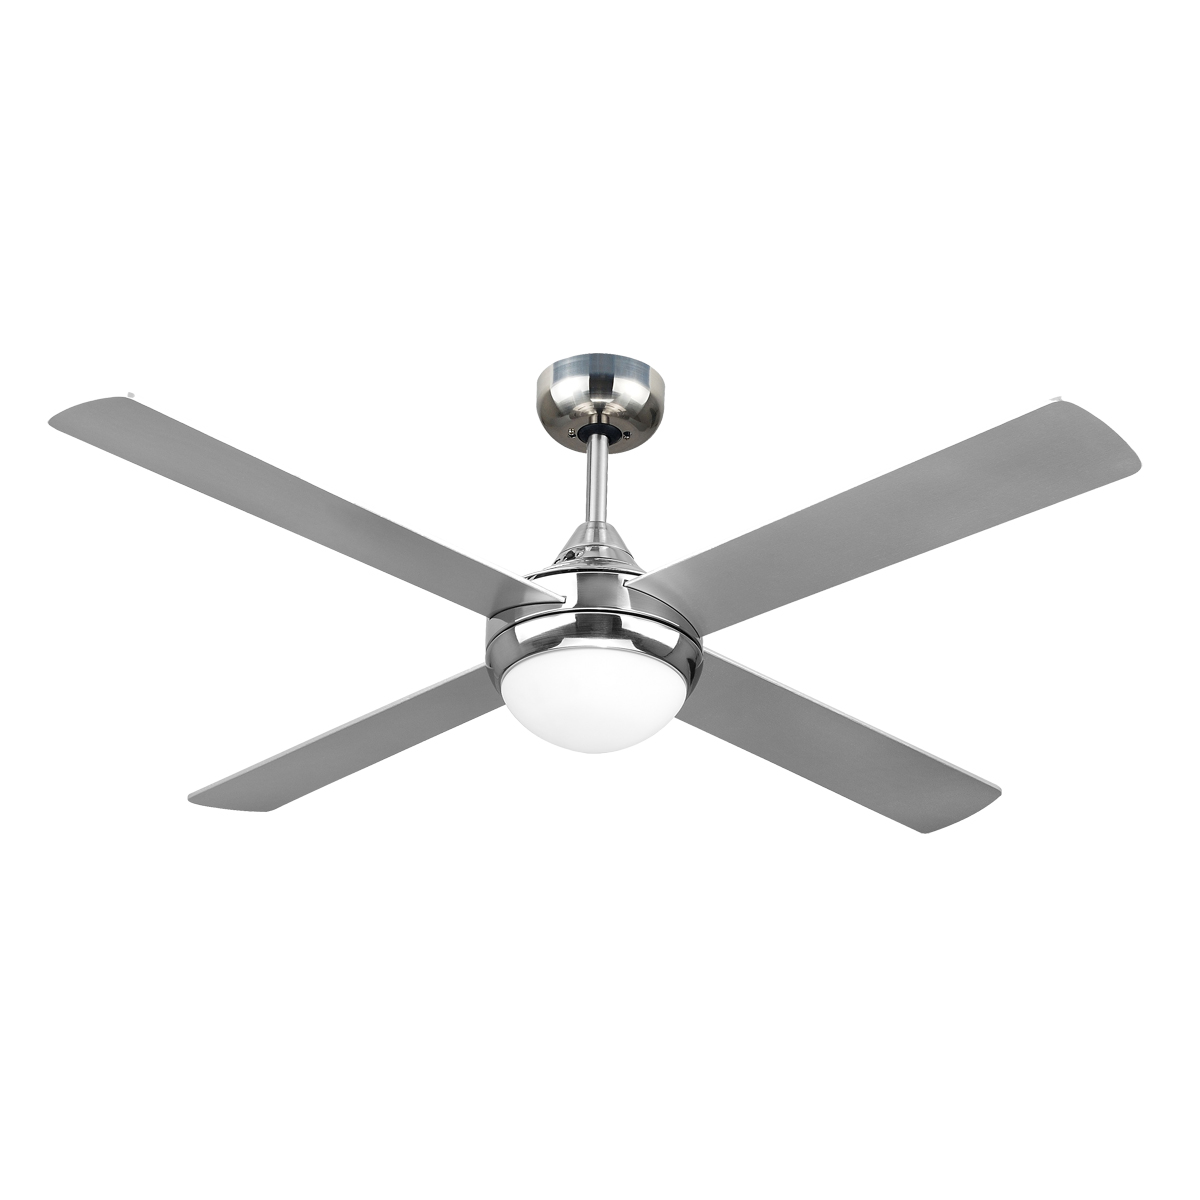 Revolve 48 Ceiling Fan Brushed Chrome 2xE27 Light